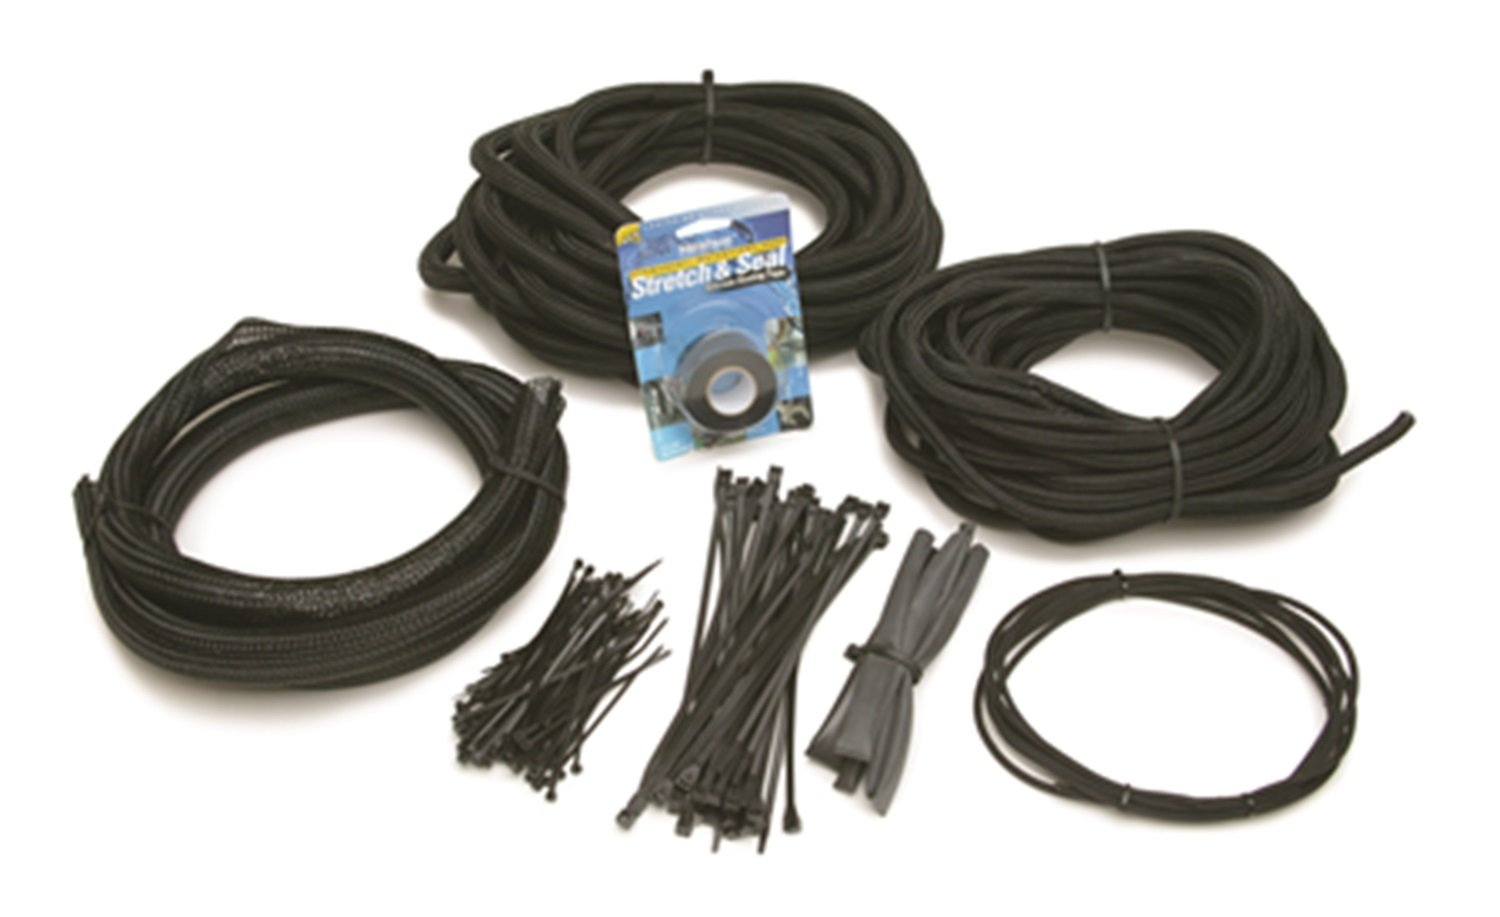 61KfhP ZlhL._SL1500_ amazon com painless wiring 70920 power braid chassis kit automotive engine wiring harness for sale at gsmportal.co